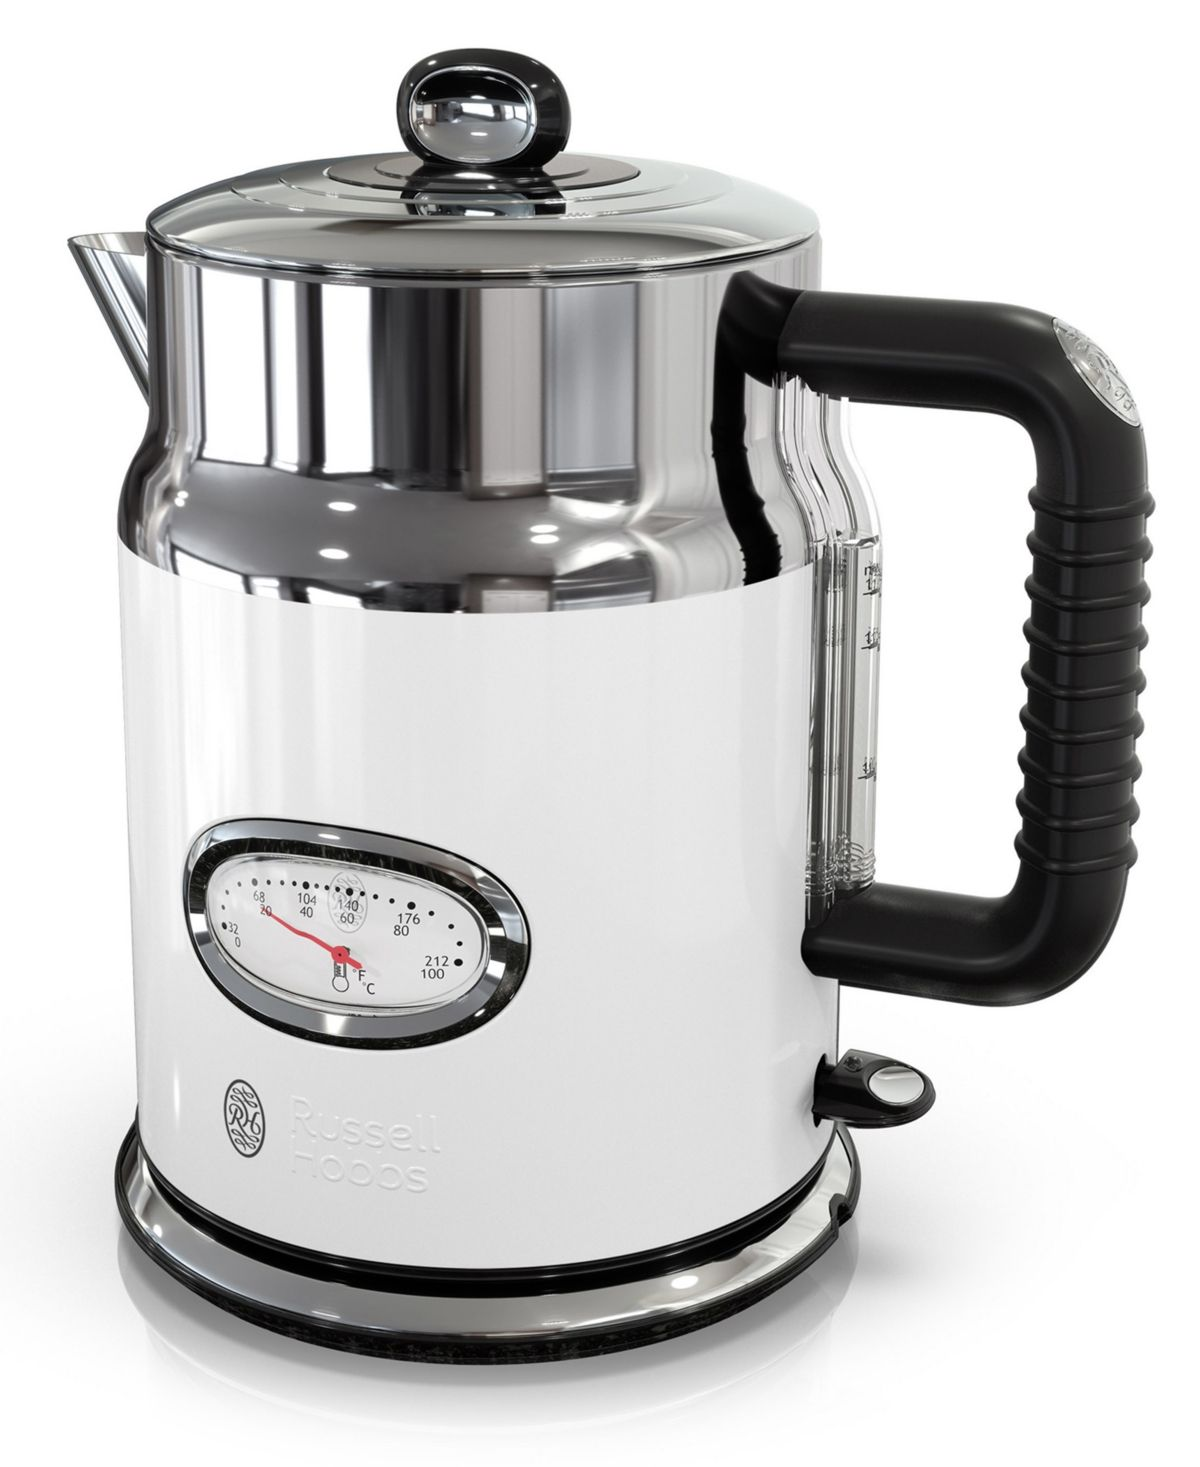 Russell Hobbs kettle reviews Which?